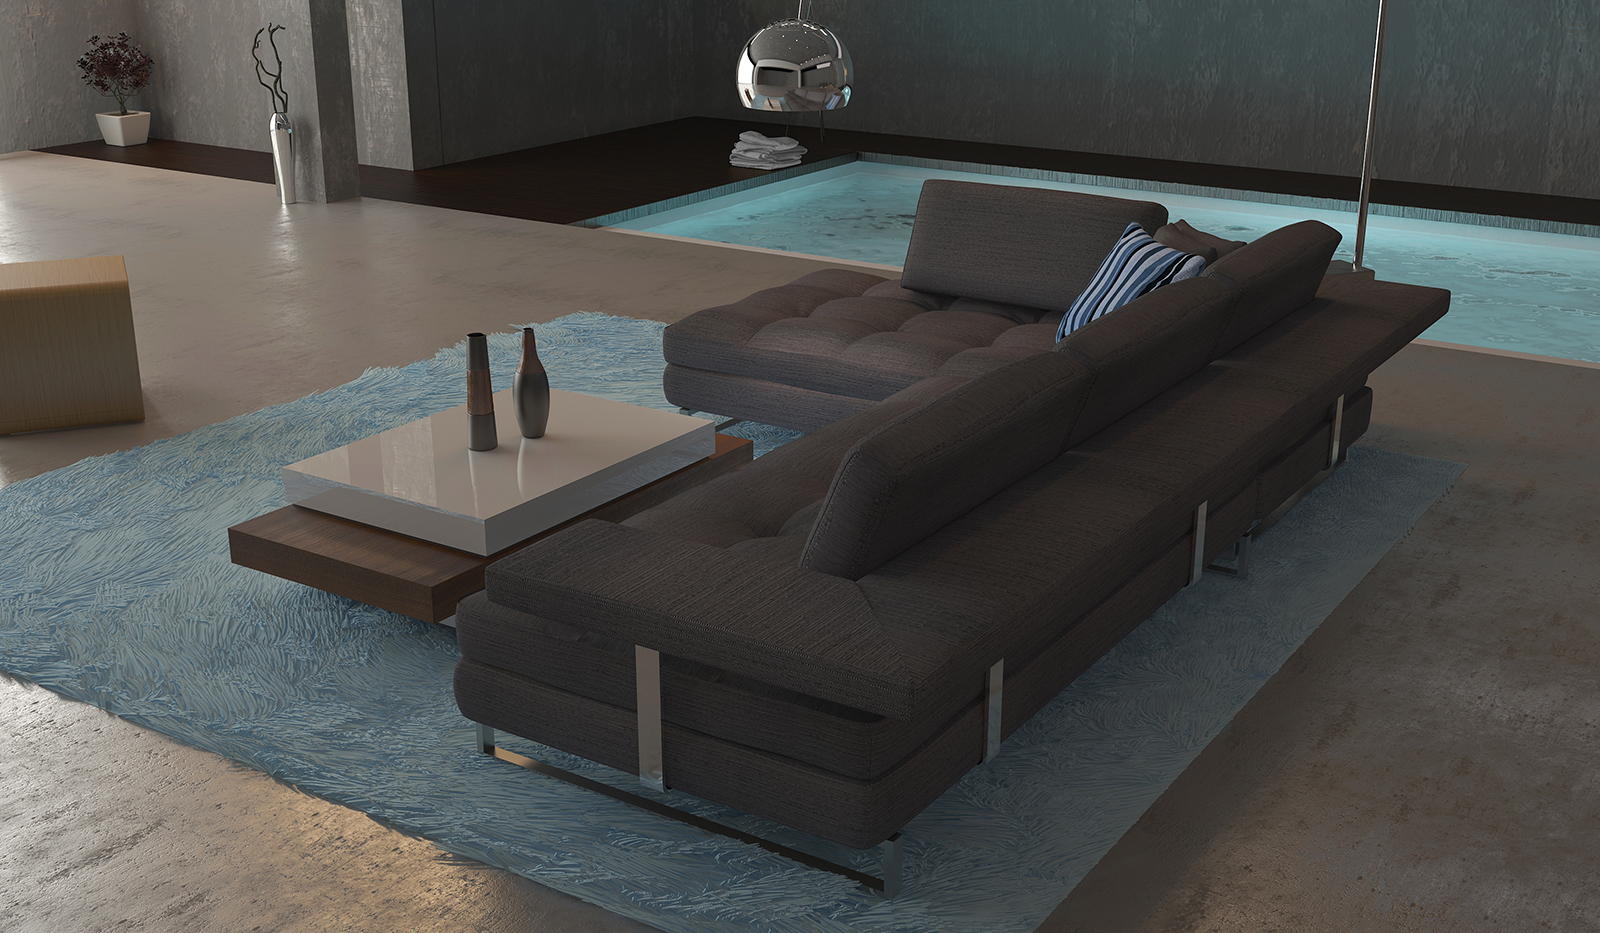 Milano.de_furniture_Sofa & table_03_Yianart